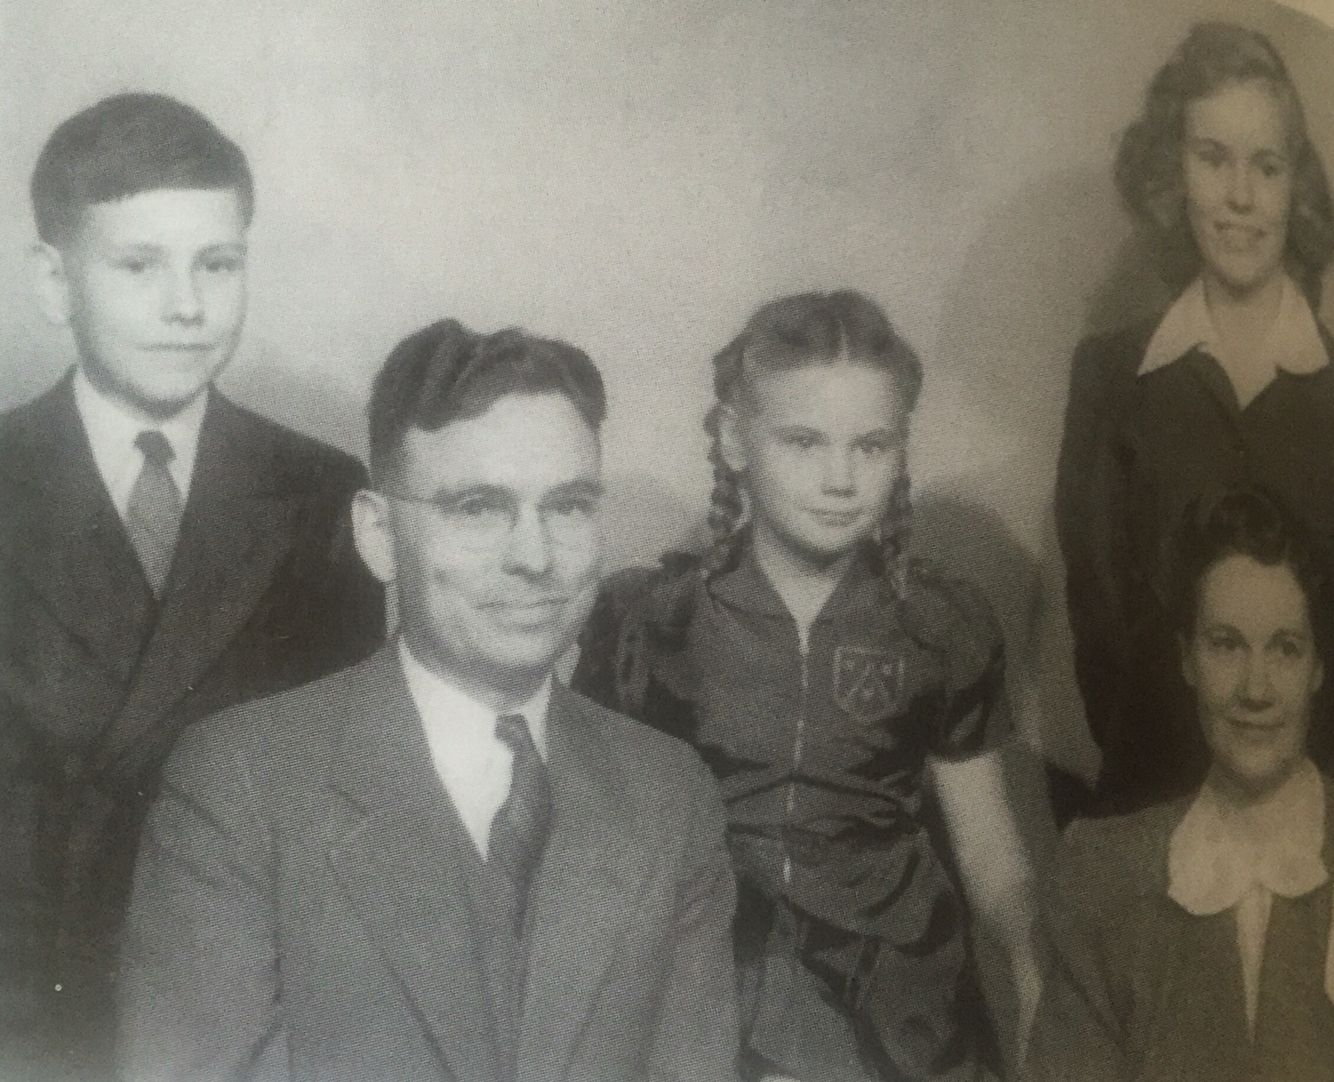 best images about warren buffett bill gates warren buffett age 12 on the far left warren his father howard